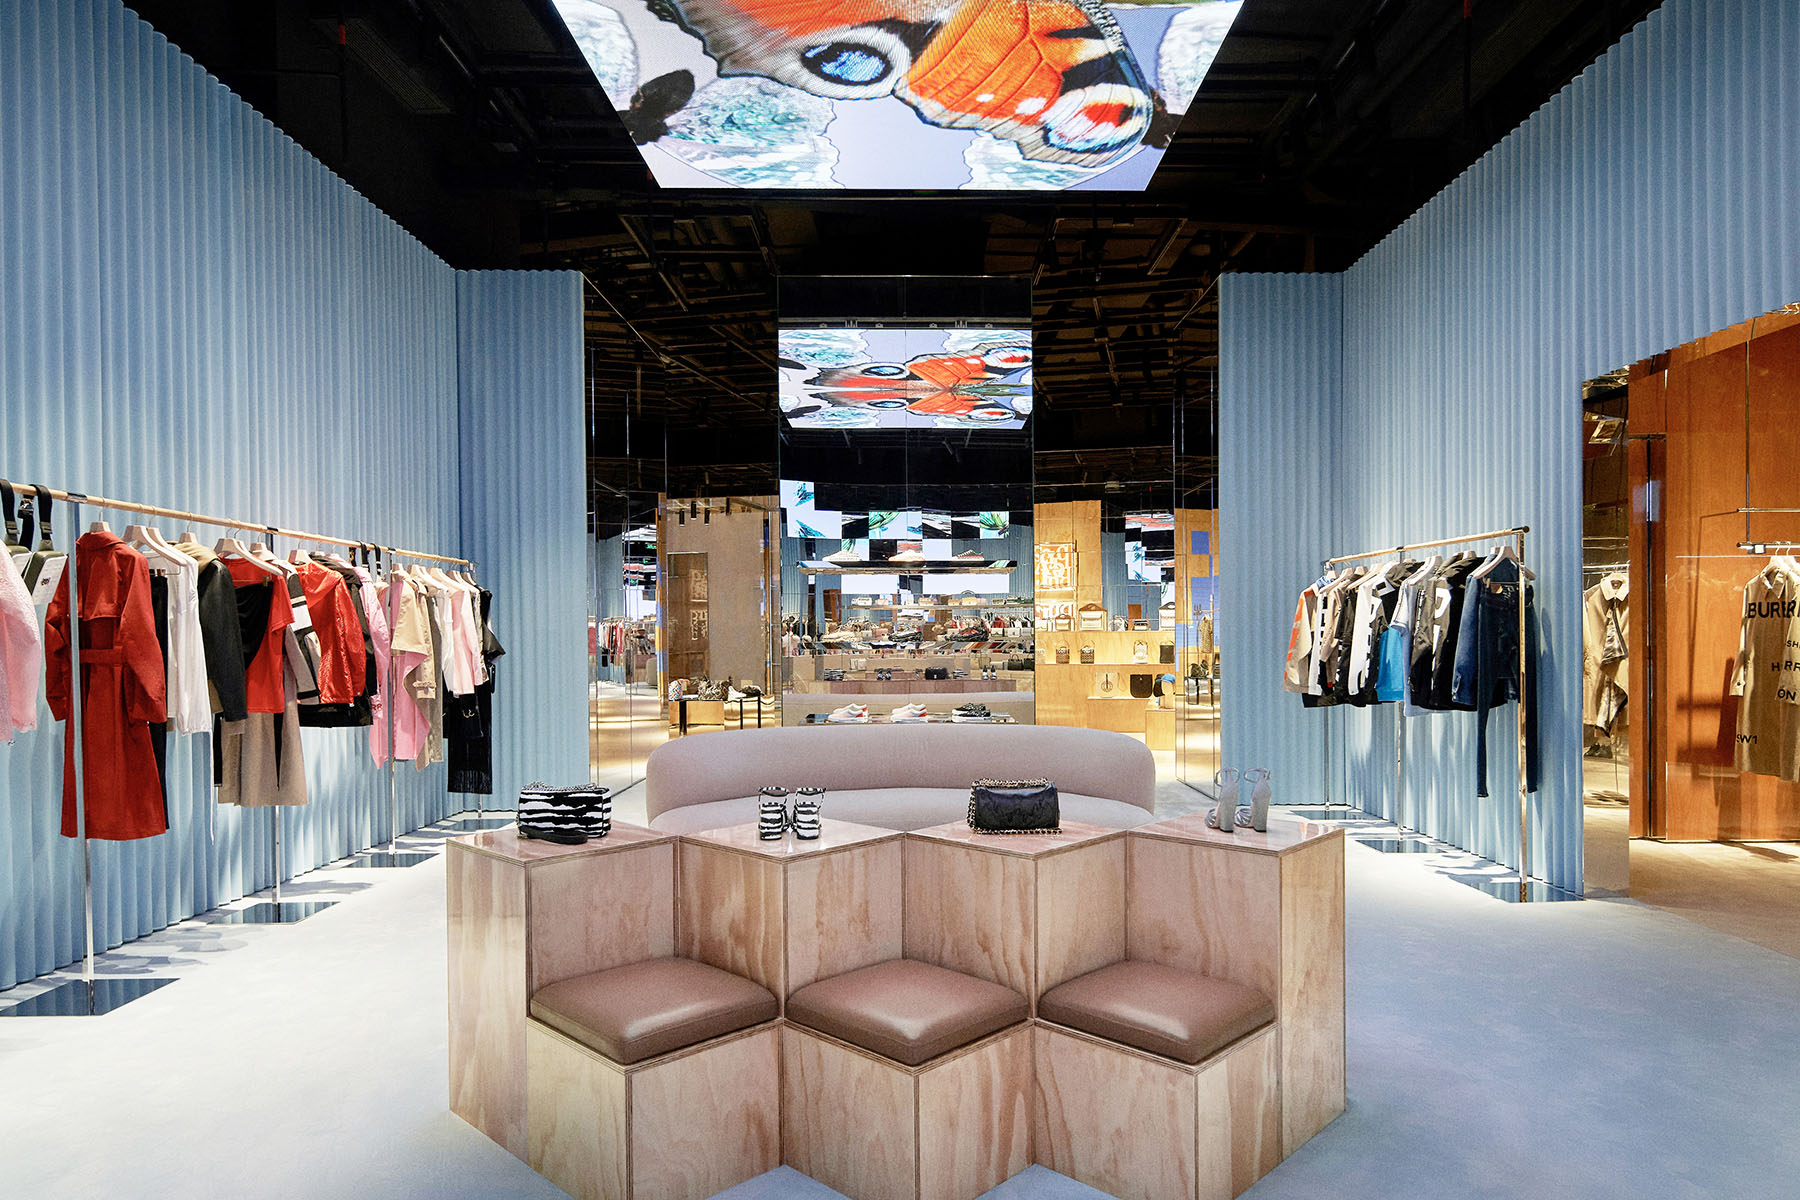 Take a look inside Burberry's first luxury social retail store in Shenzhen